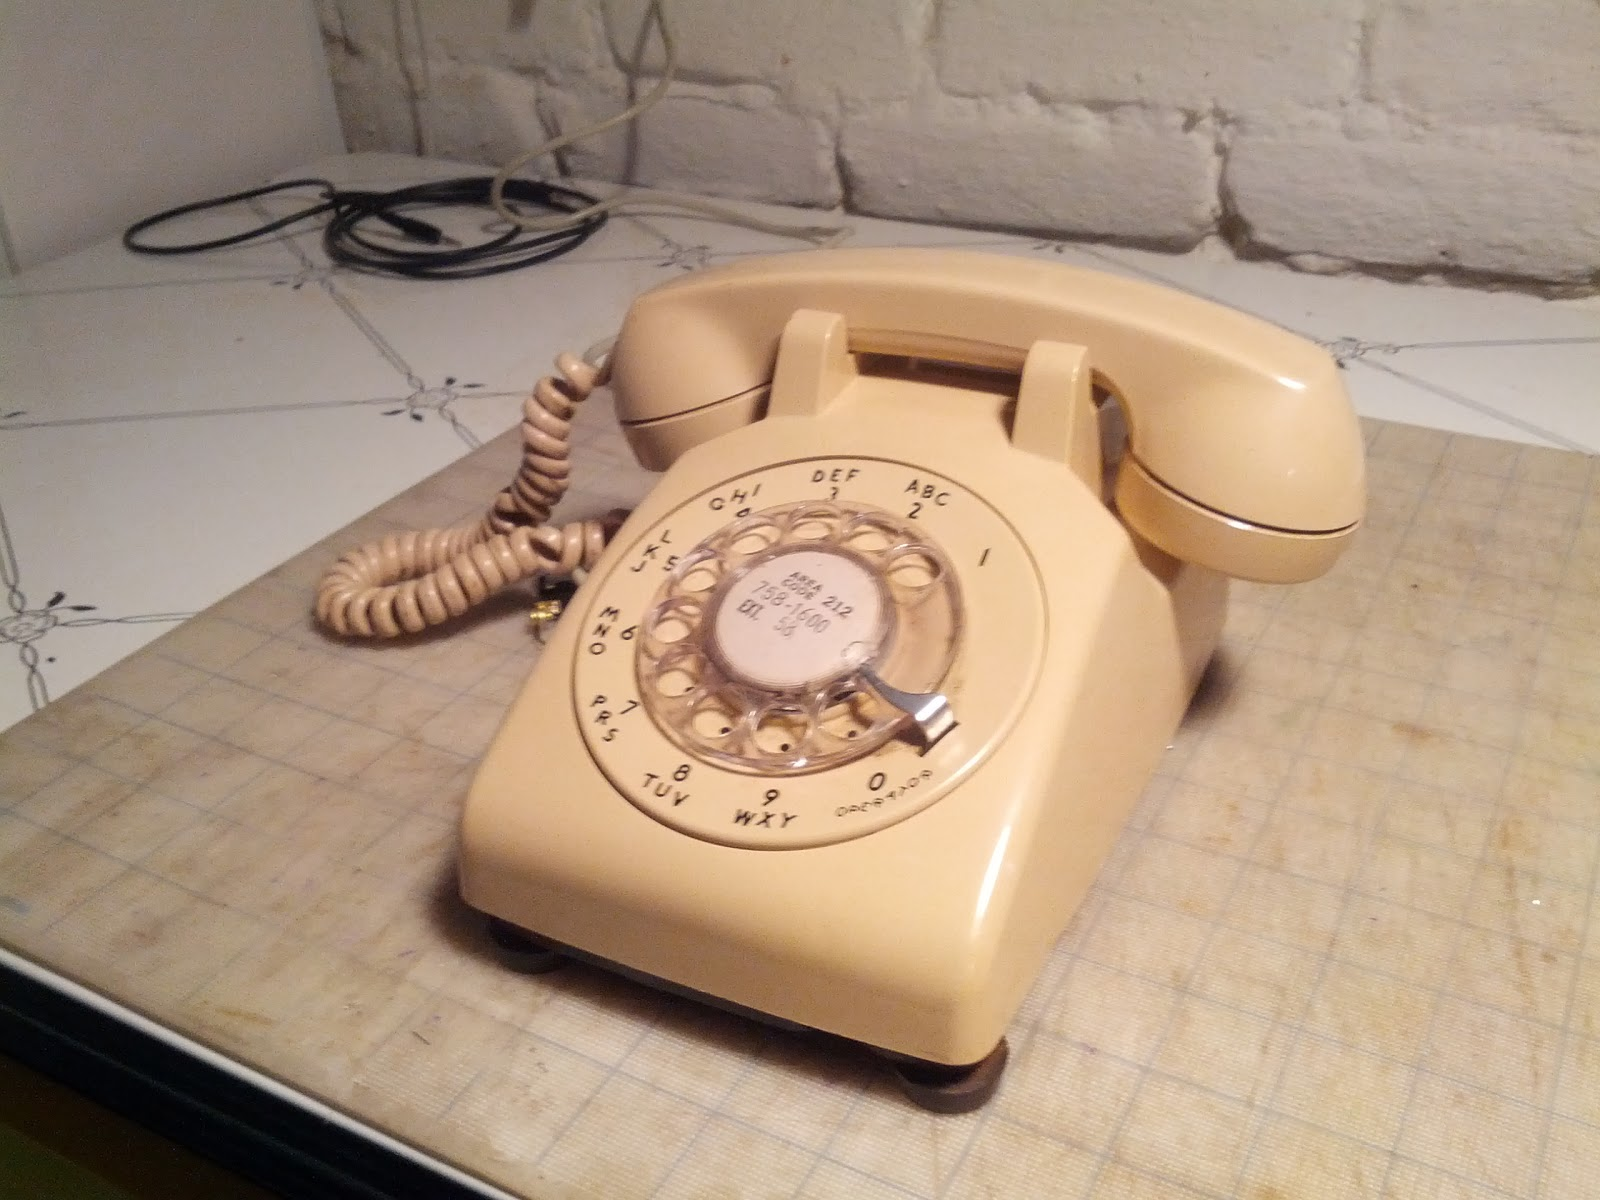 New Project: Arduino Rotary Phone! | audio_maelstrom